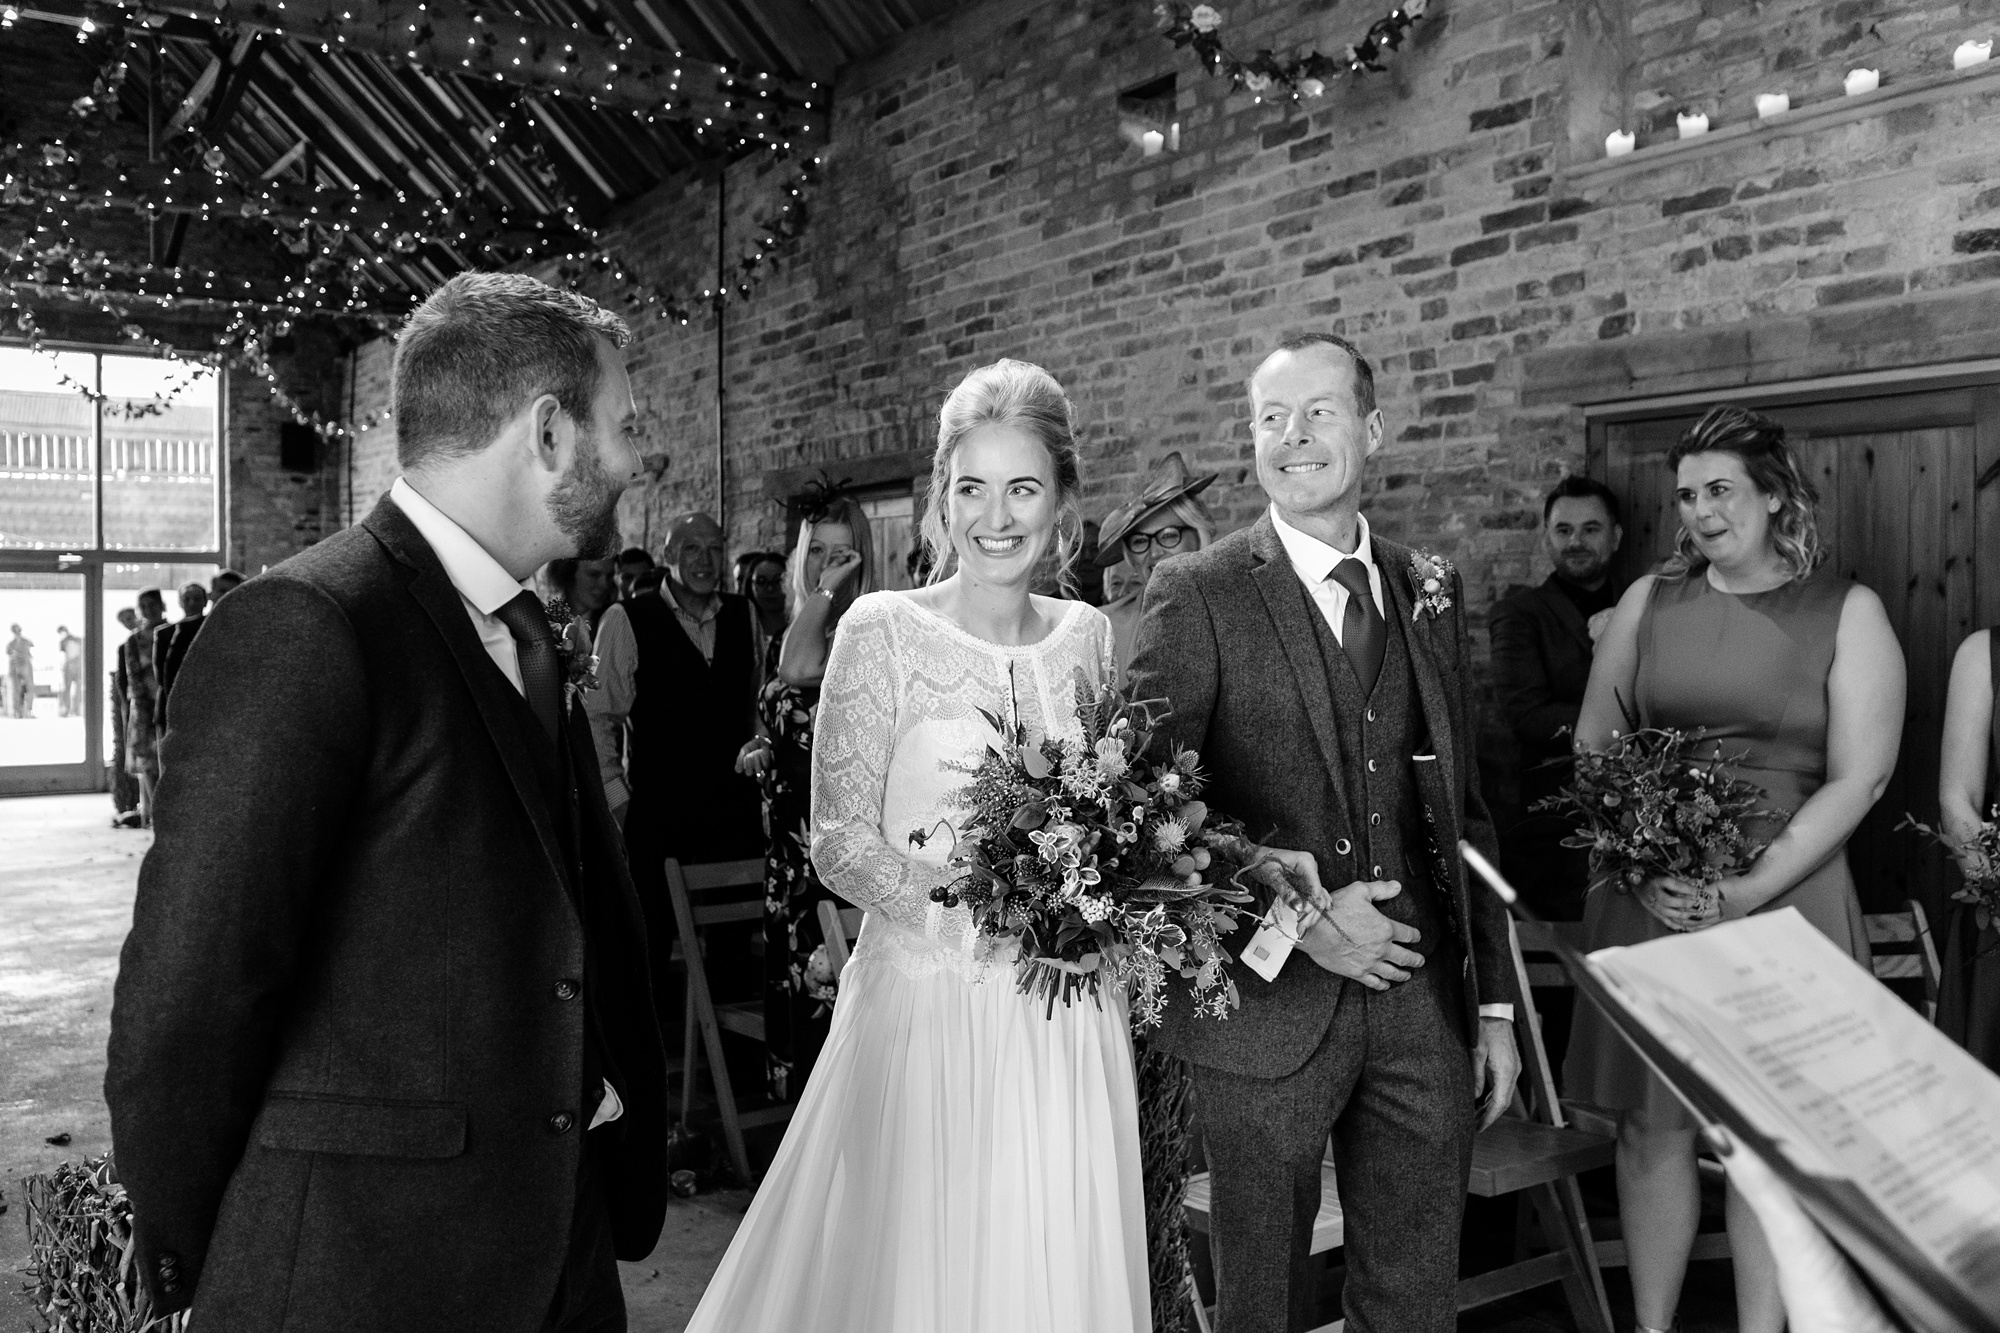 Barmbyfield Barn Wedding Photography bride walks up the aisle and sees groom for first time.